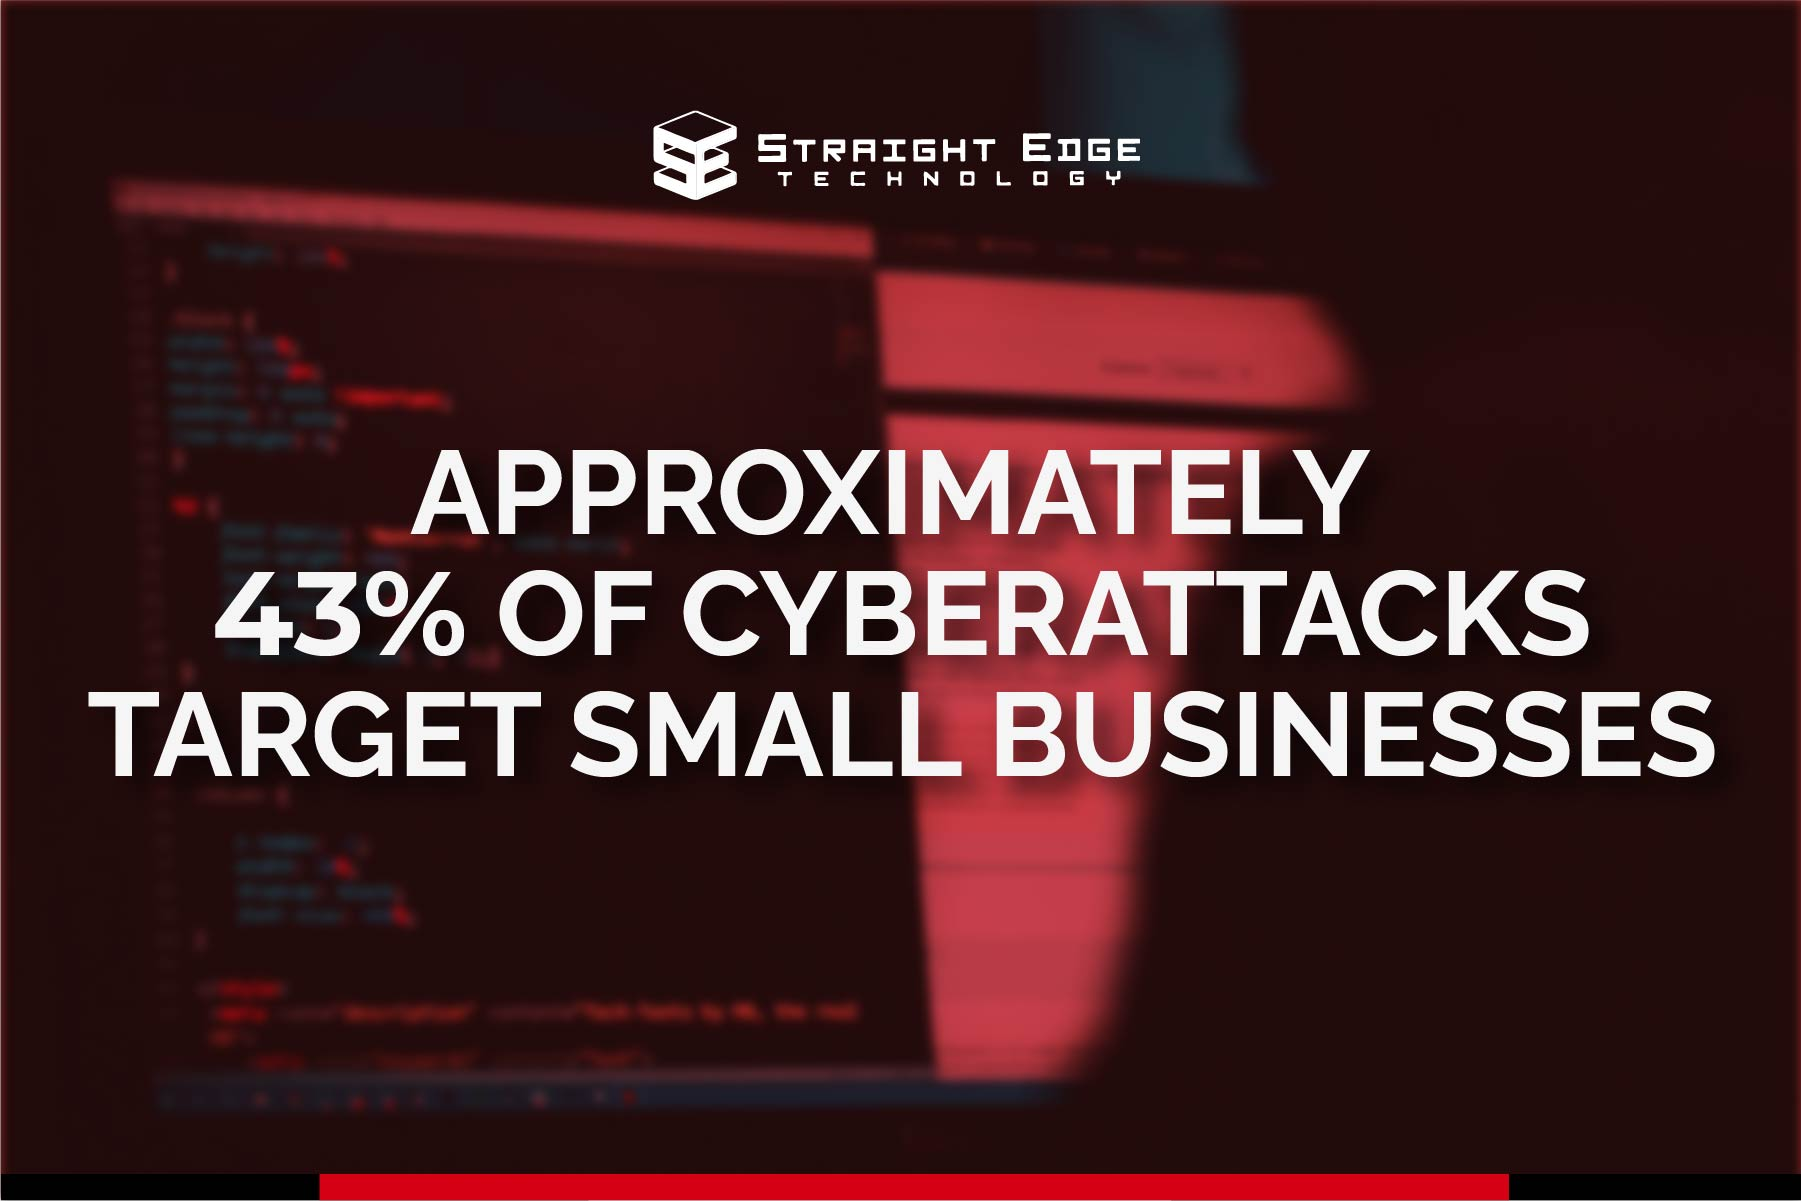 approximatley 43% of cyberattacks target small businesses